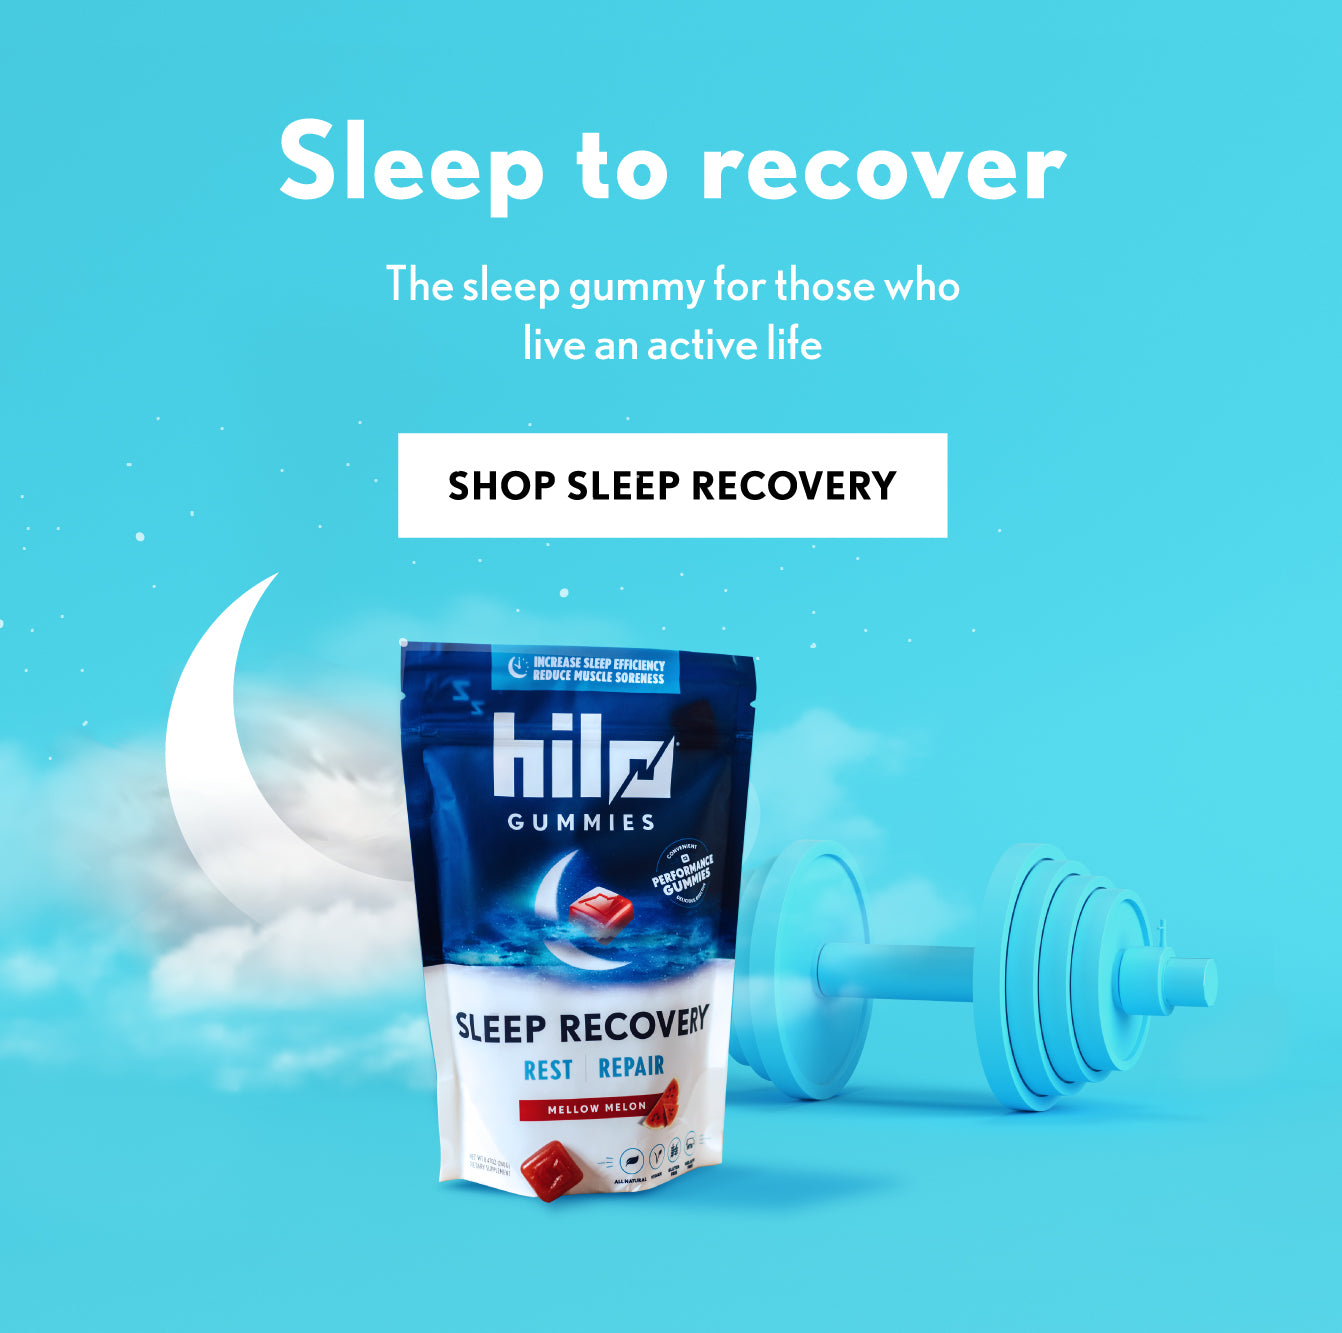 Sleep to recovery. The sleep gummy for those who live an active life